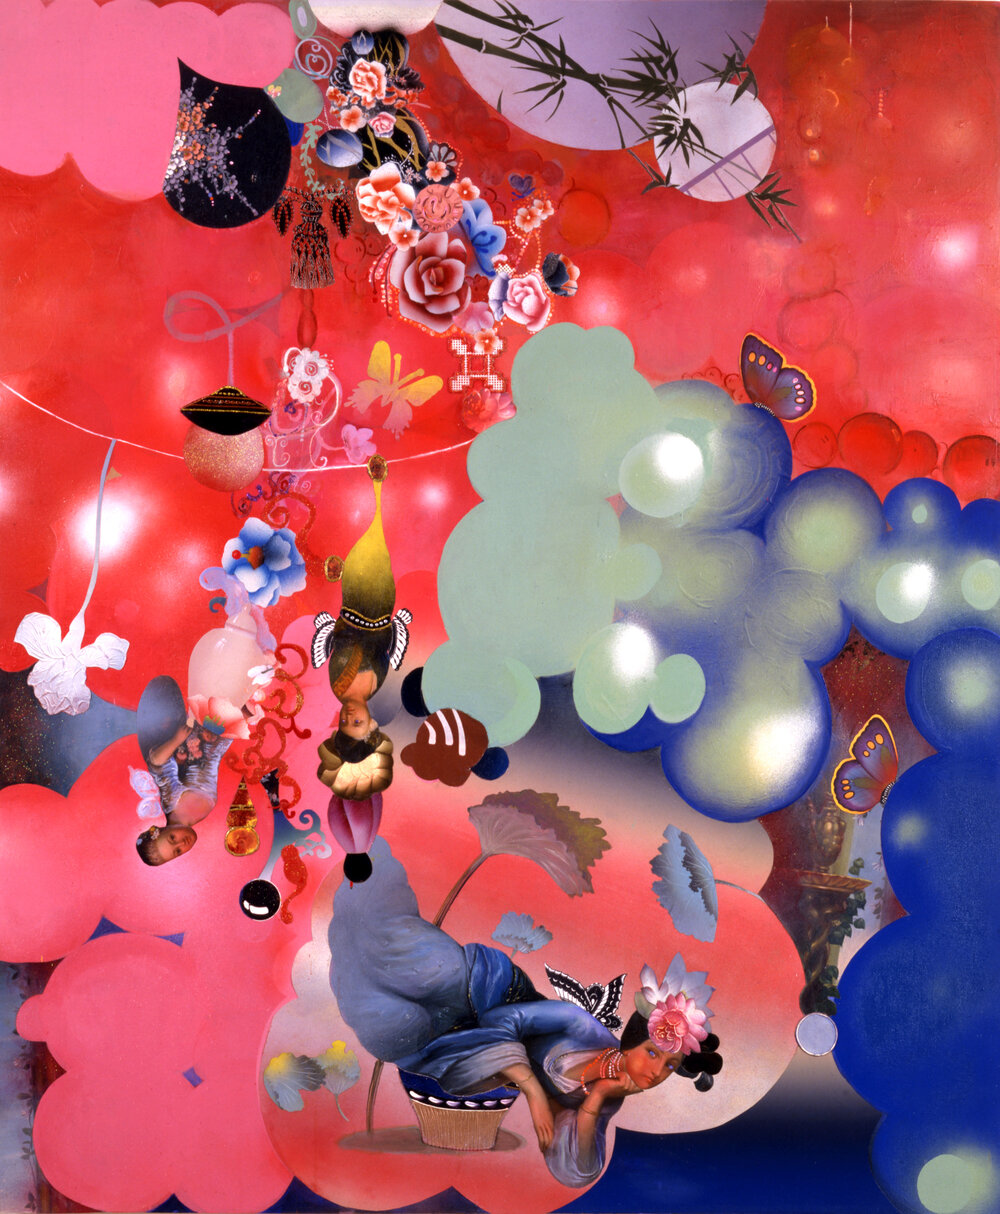 "In the Diamond Light of an Evening's Dream, 83"" × 60"", mixed media on canvas, 2002"